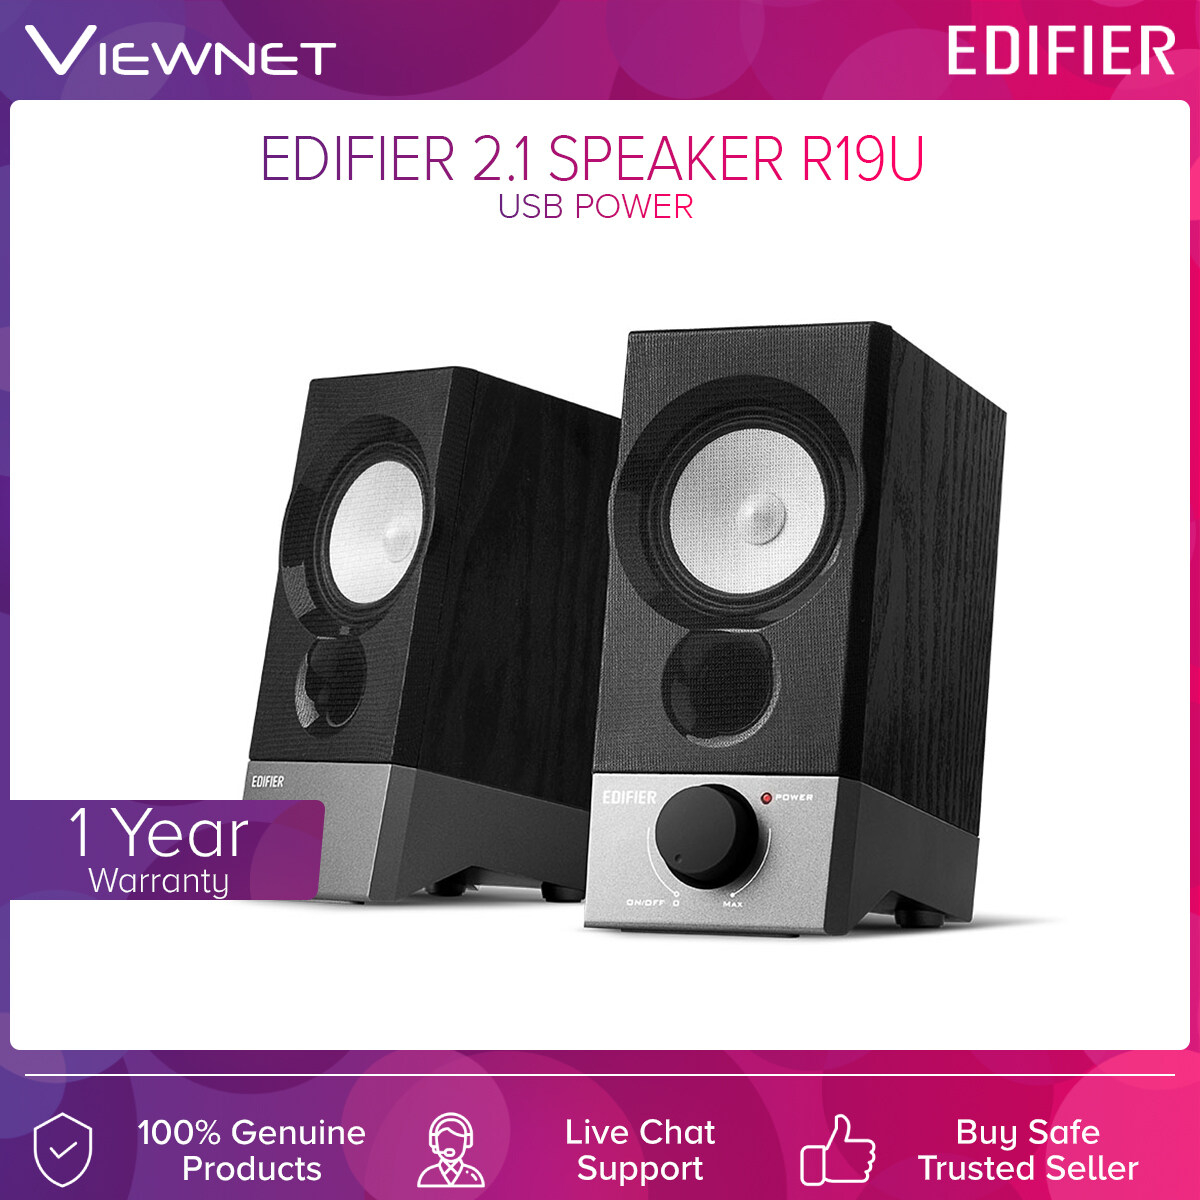 Edifier 2.1 Speaker R19U with USB Direct Power, Aux Connection, Angled Design